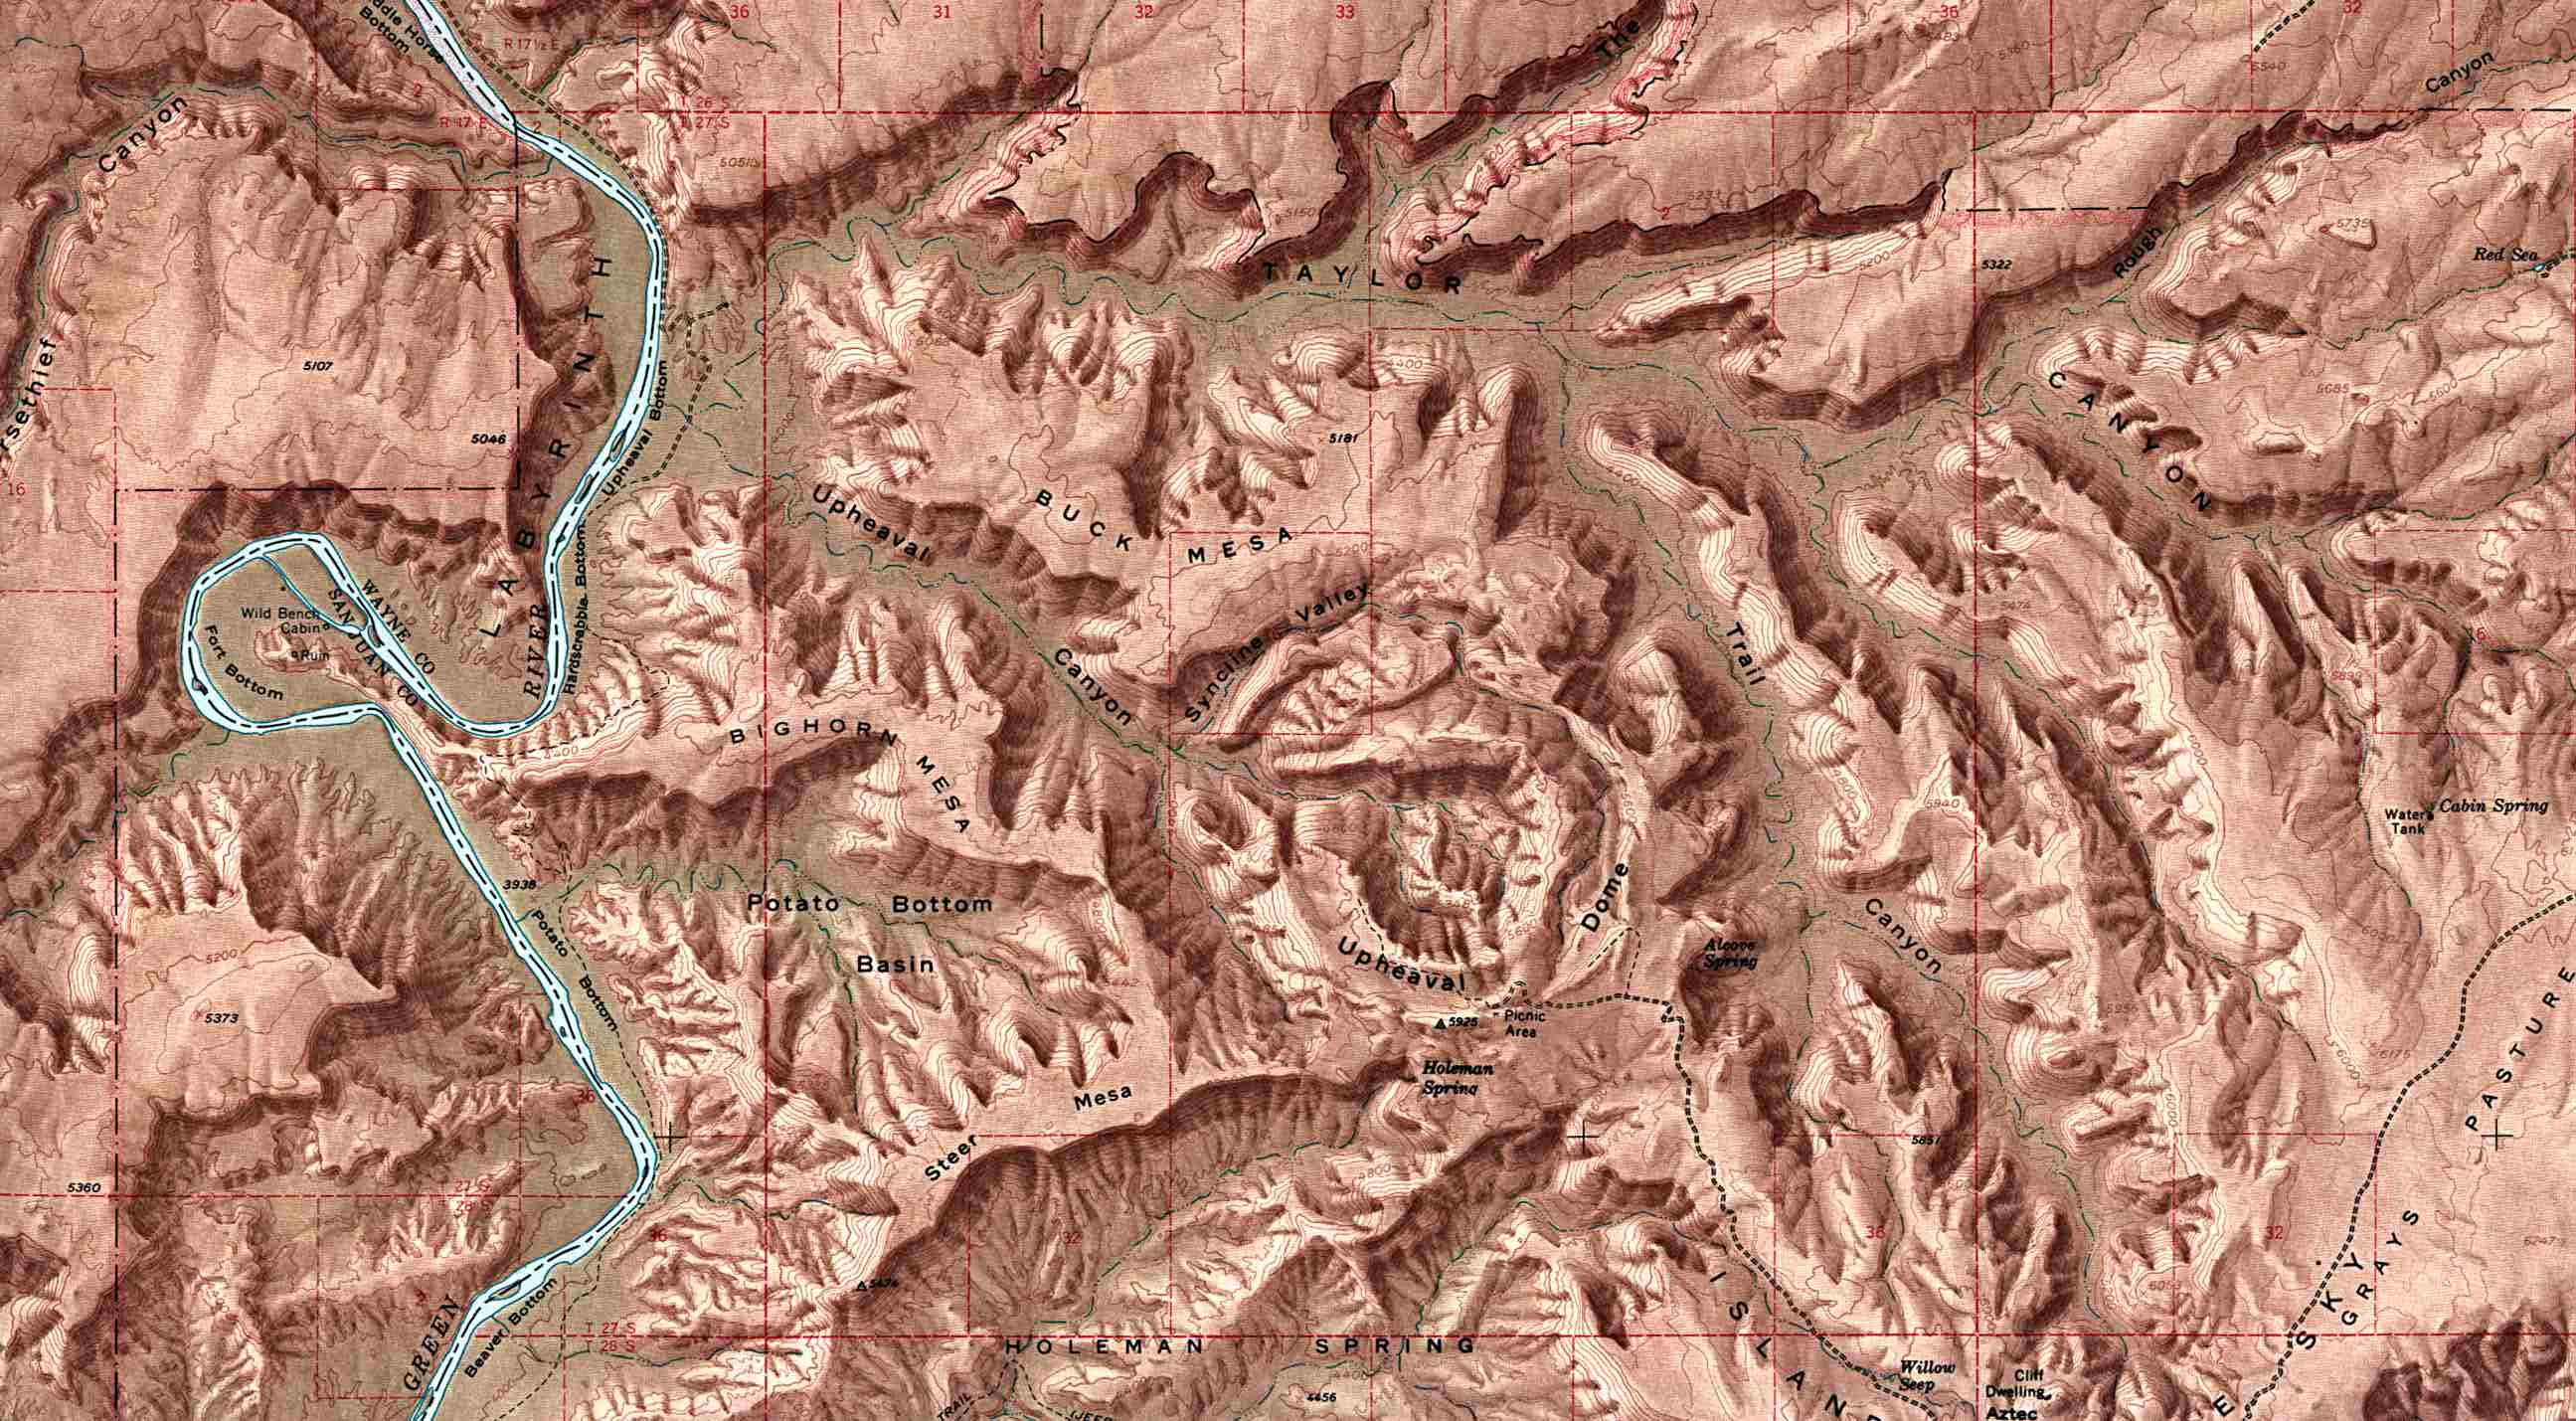 Canyonlands National Park Shaded Relief Map, Utah, United States